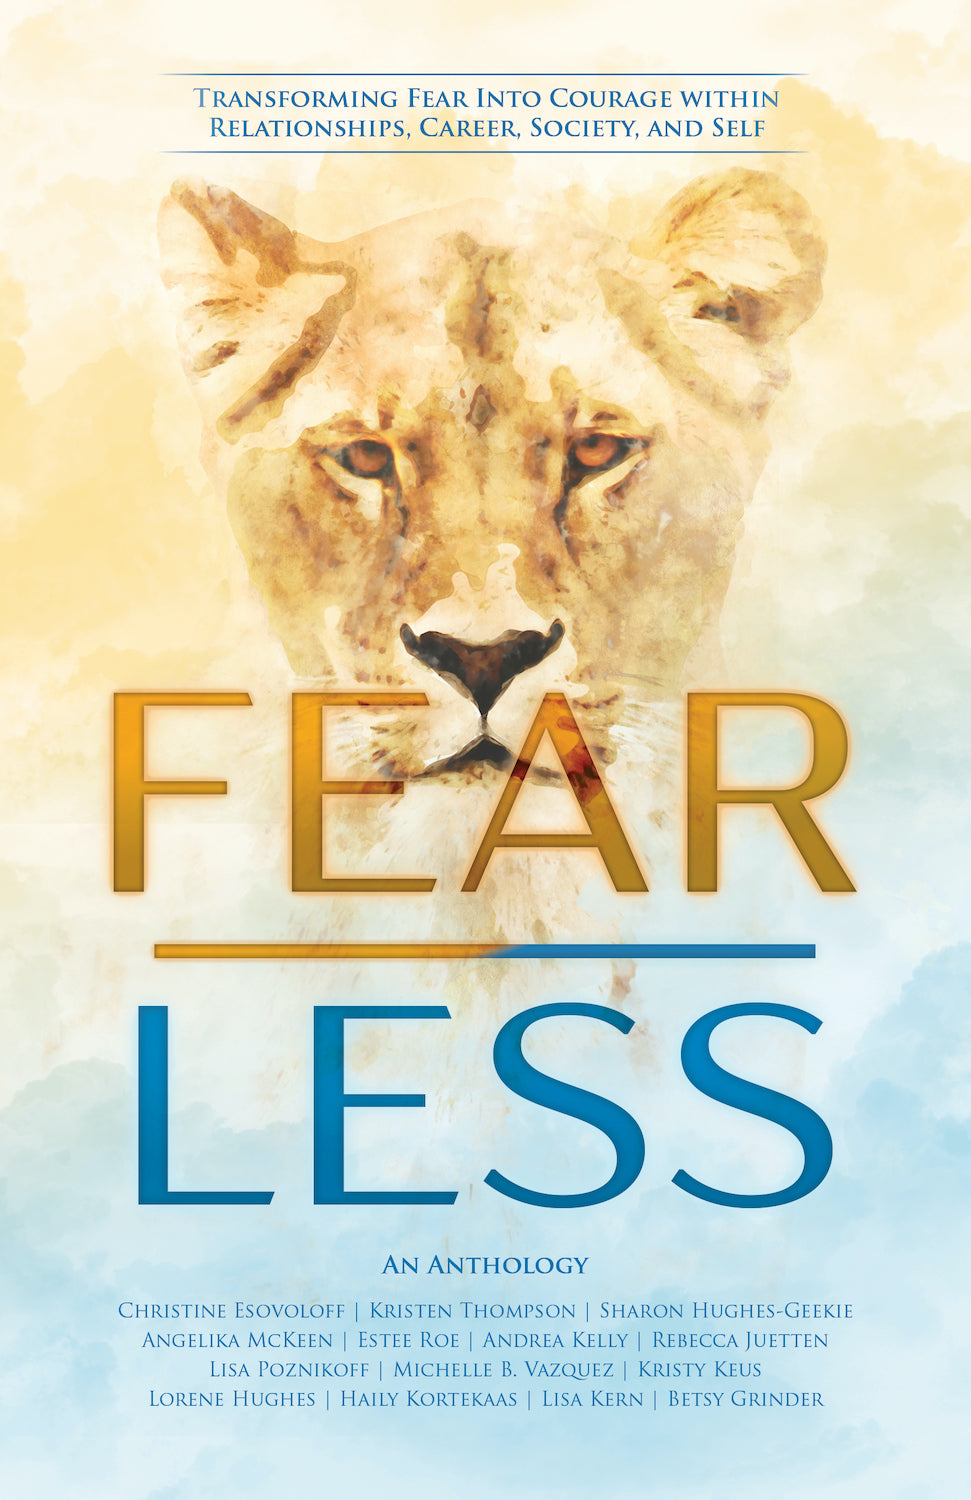 Fear Less (preorder Spring 2021)